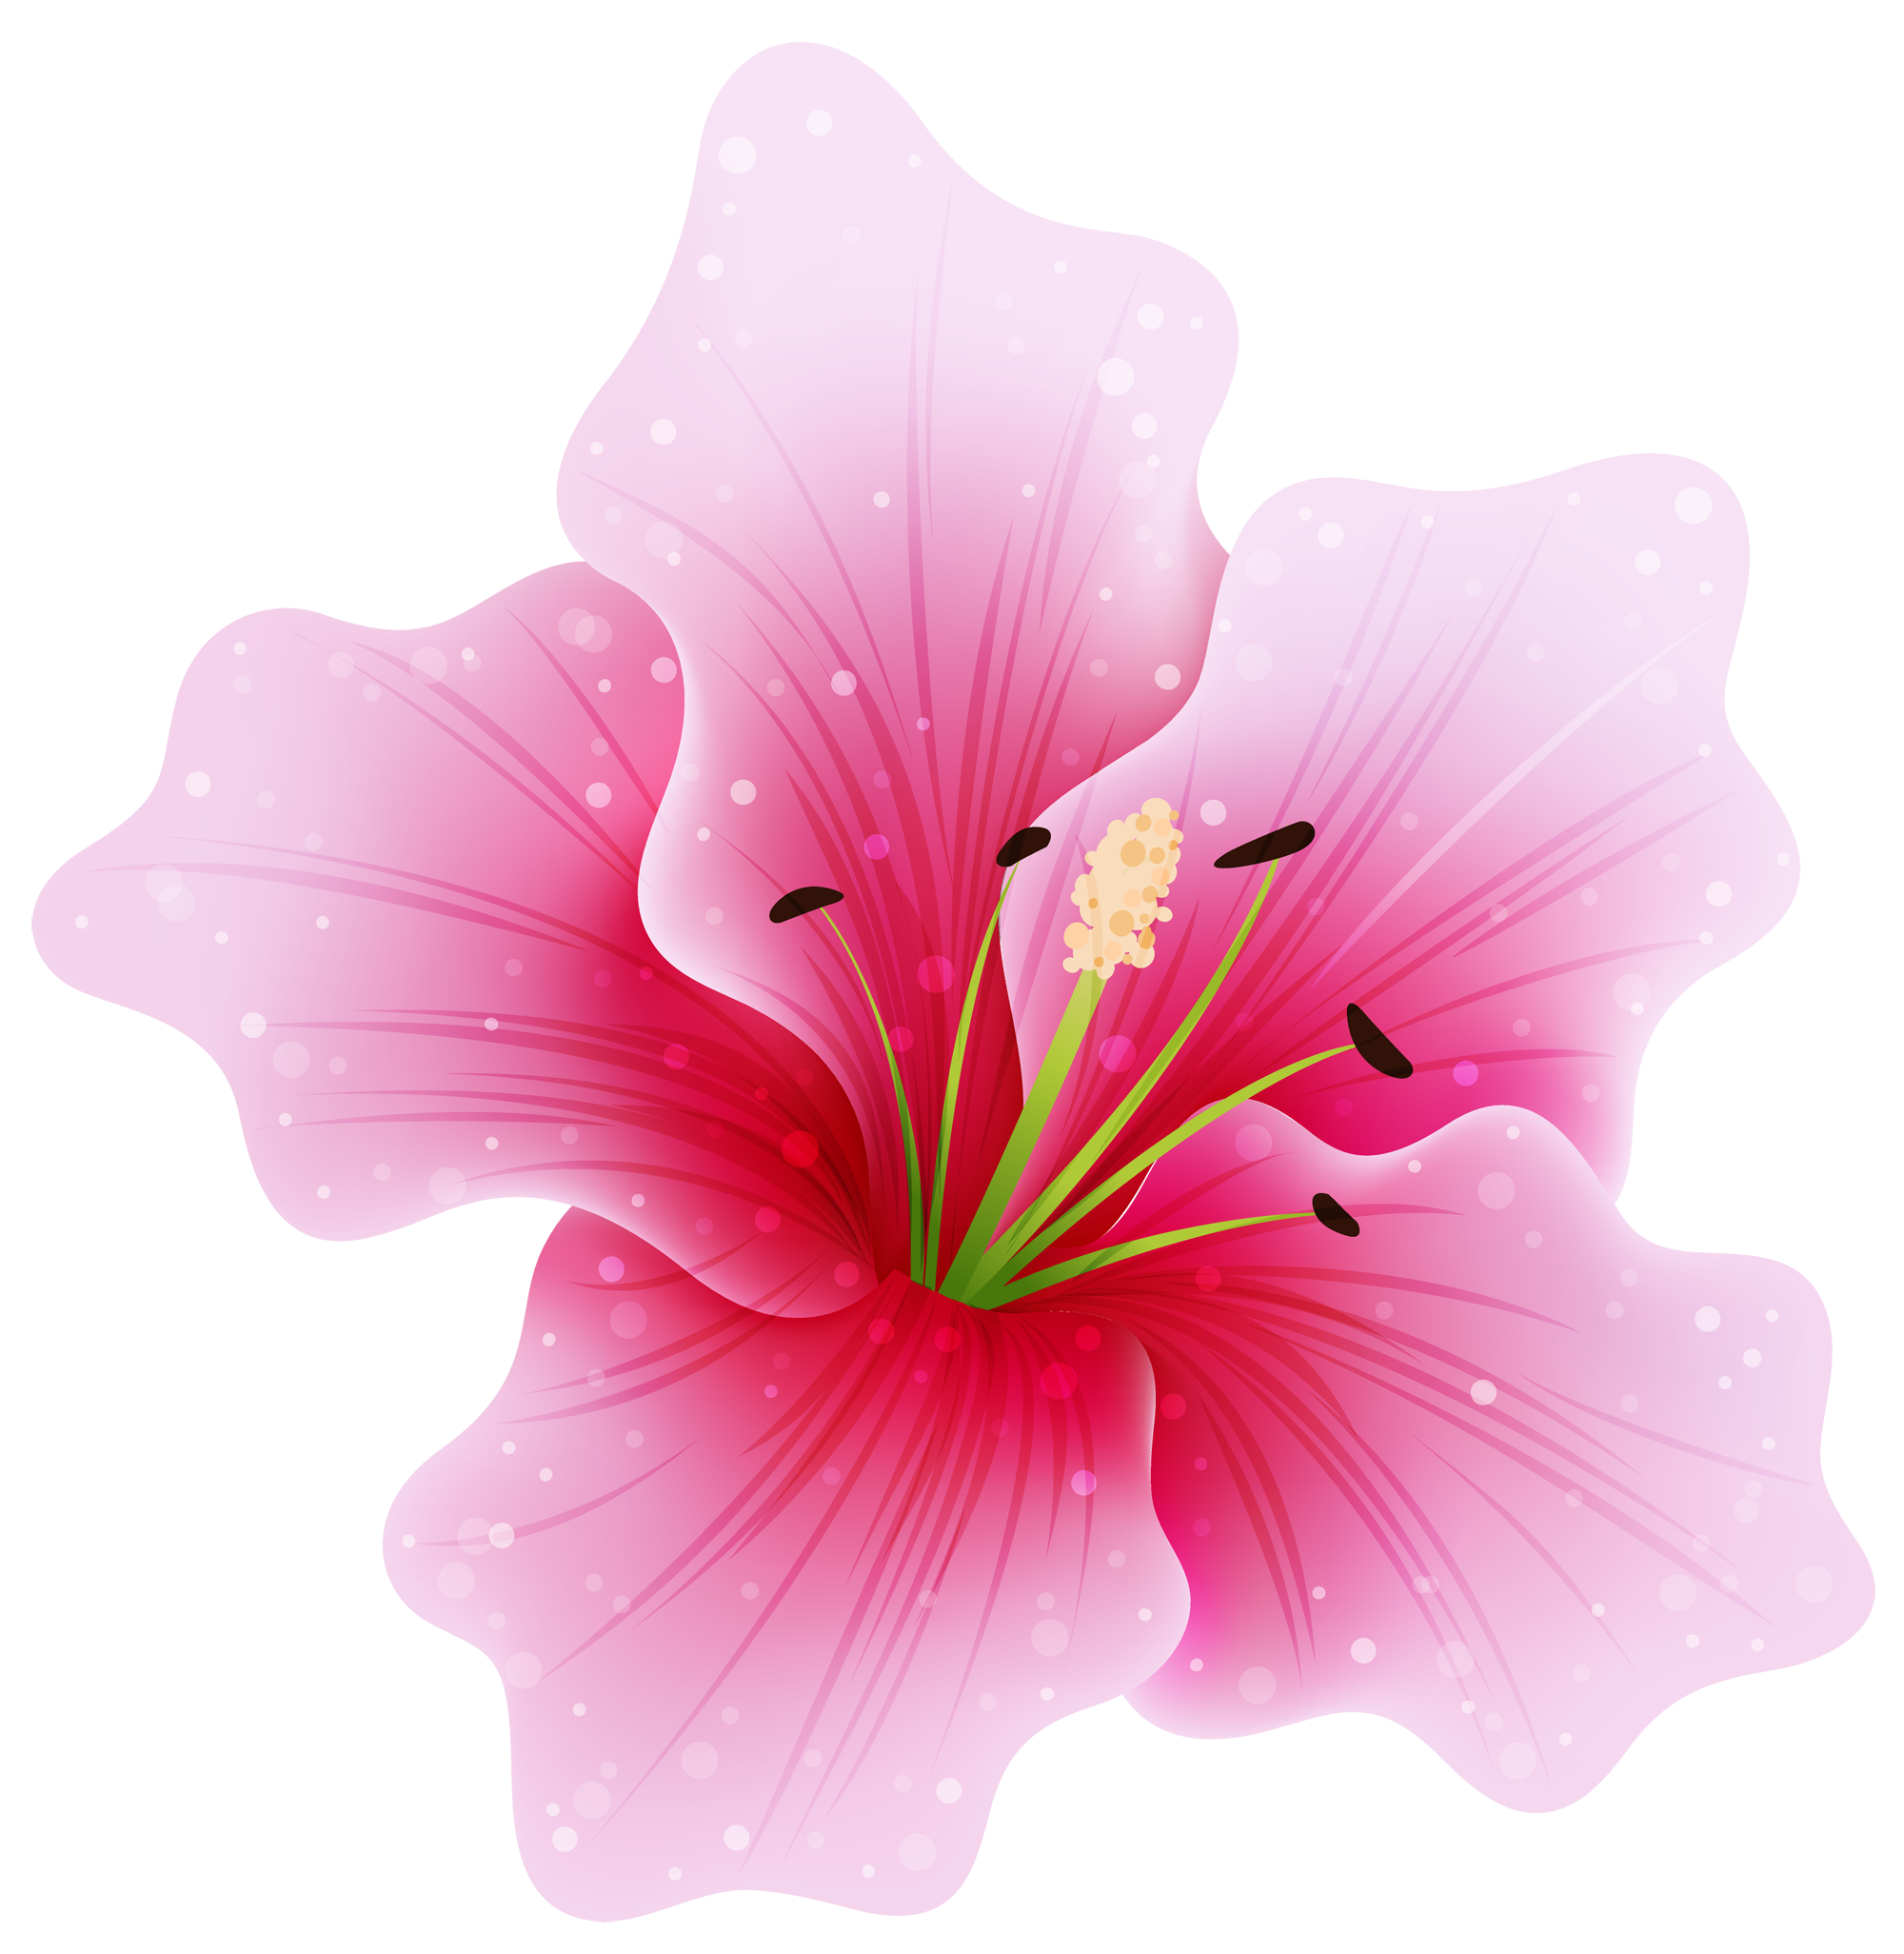 Flower Png Transparent Flower Png Images Pluspng